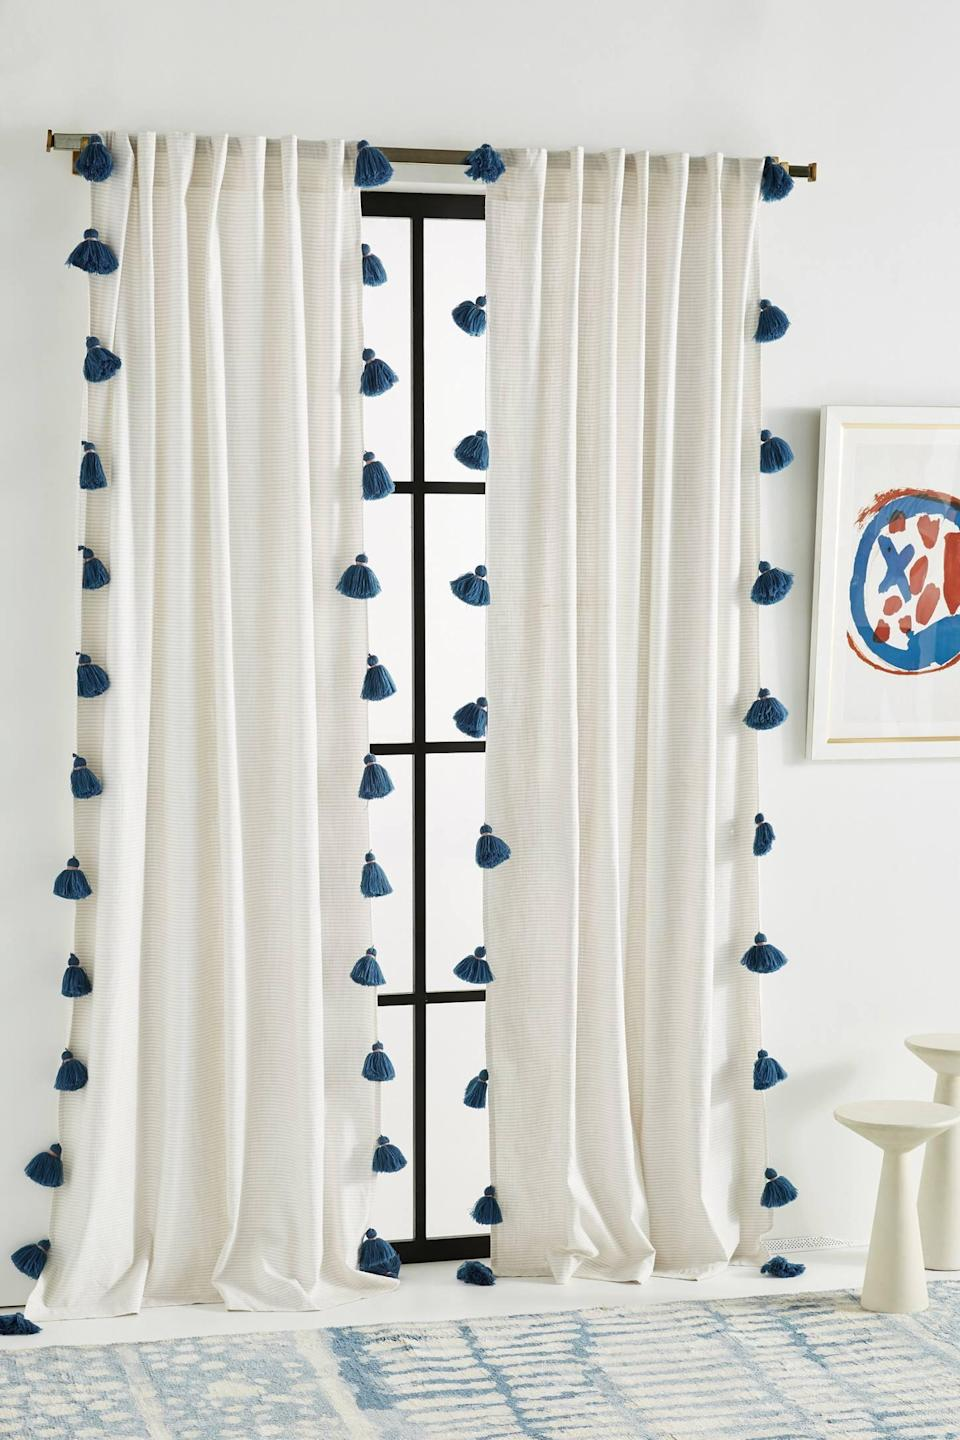 """<p>This <a href=""""https://www.popsugar.com/buy/Mindra-Curtain-560408?p_name=Mindra%20Curtain&retailer=anthropologie.com&pid=560408&price=78&evar1=casa%3Aus&evar9=46598422&evar98=https%3A%2F%2Fwww.popsugar.com%2Fhome%2Fphoto-gallery%2F46598422%2Fimage%2F47342591%2FMindra-Curtain&list1=shopping%2Chome%20decor%2Chome%20shopping&prop13=mobile&pdata=1"""" class=""""link rapid-noclick-resp"""" rel=""""nofollow noopener"""" target=""""_blank"""" data-ylk=""""slk:Mindra Curtain"""">Mindra Curtain</a> ($78-$108) also comes in pink and blue.</p>"""